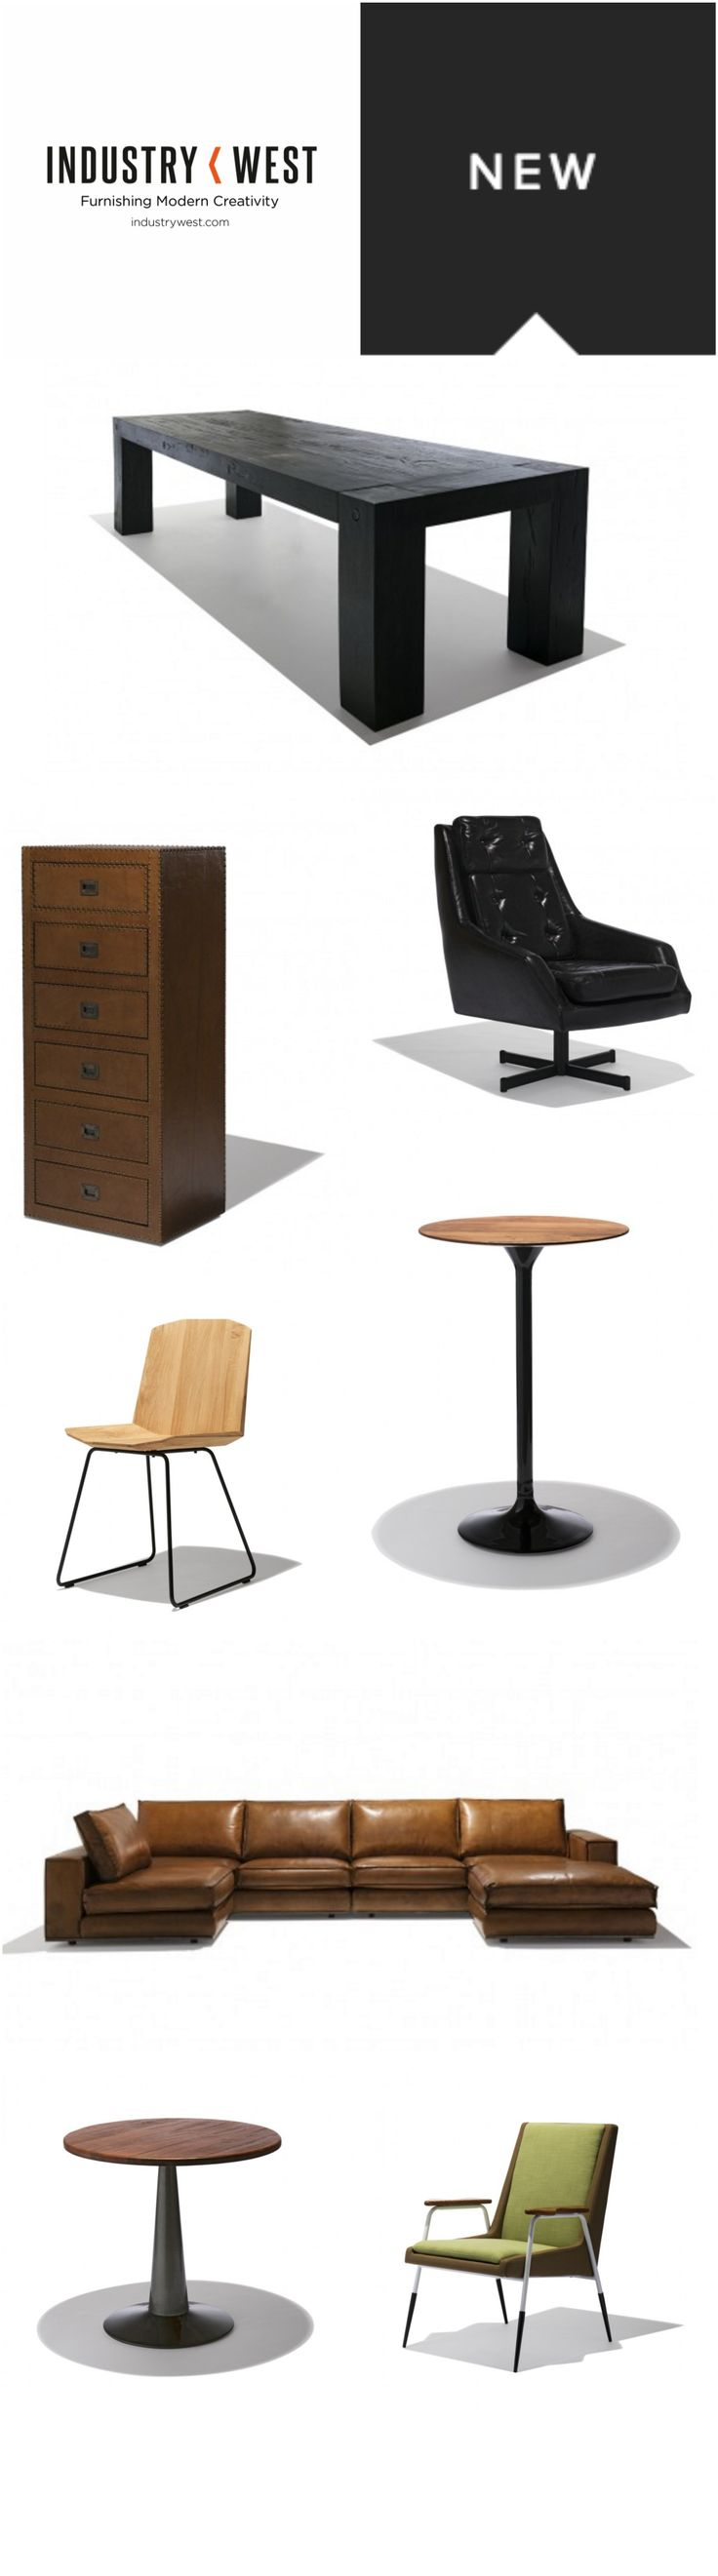 856 best design furniture images on pinterest furniture ideas shop new arrivals of modern industrial and mid century designs